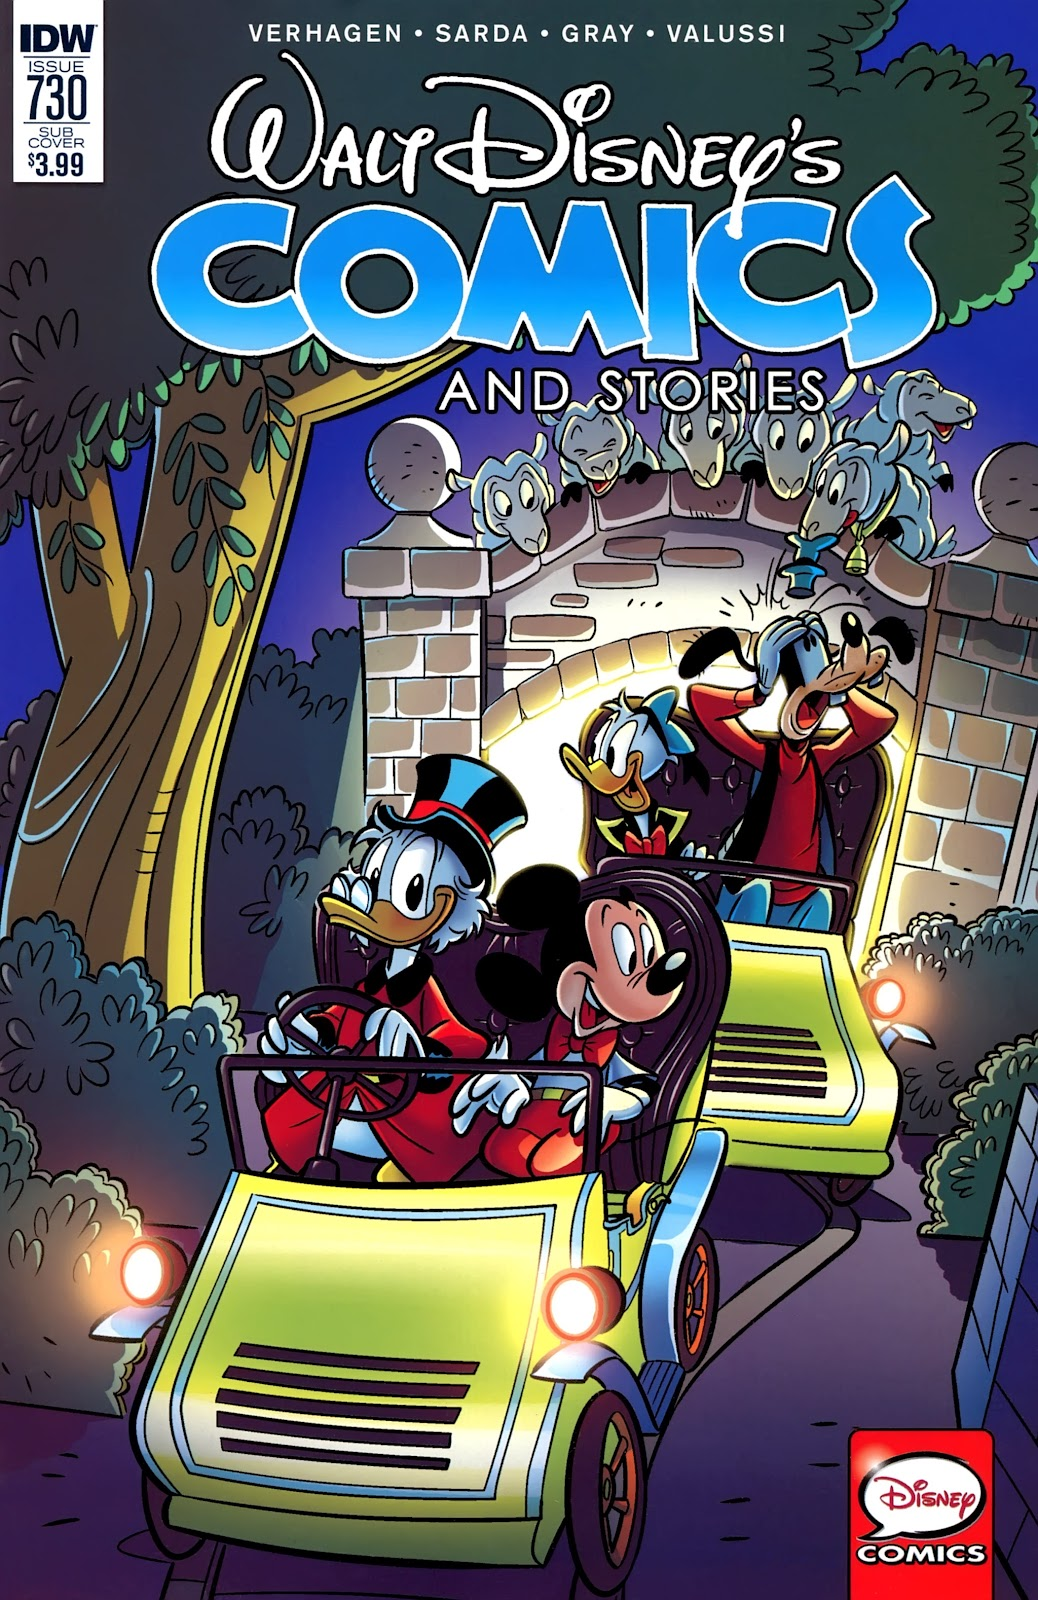 Walt Disneys Comics and Stories issue 730 - Page 1